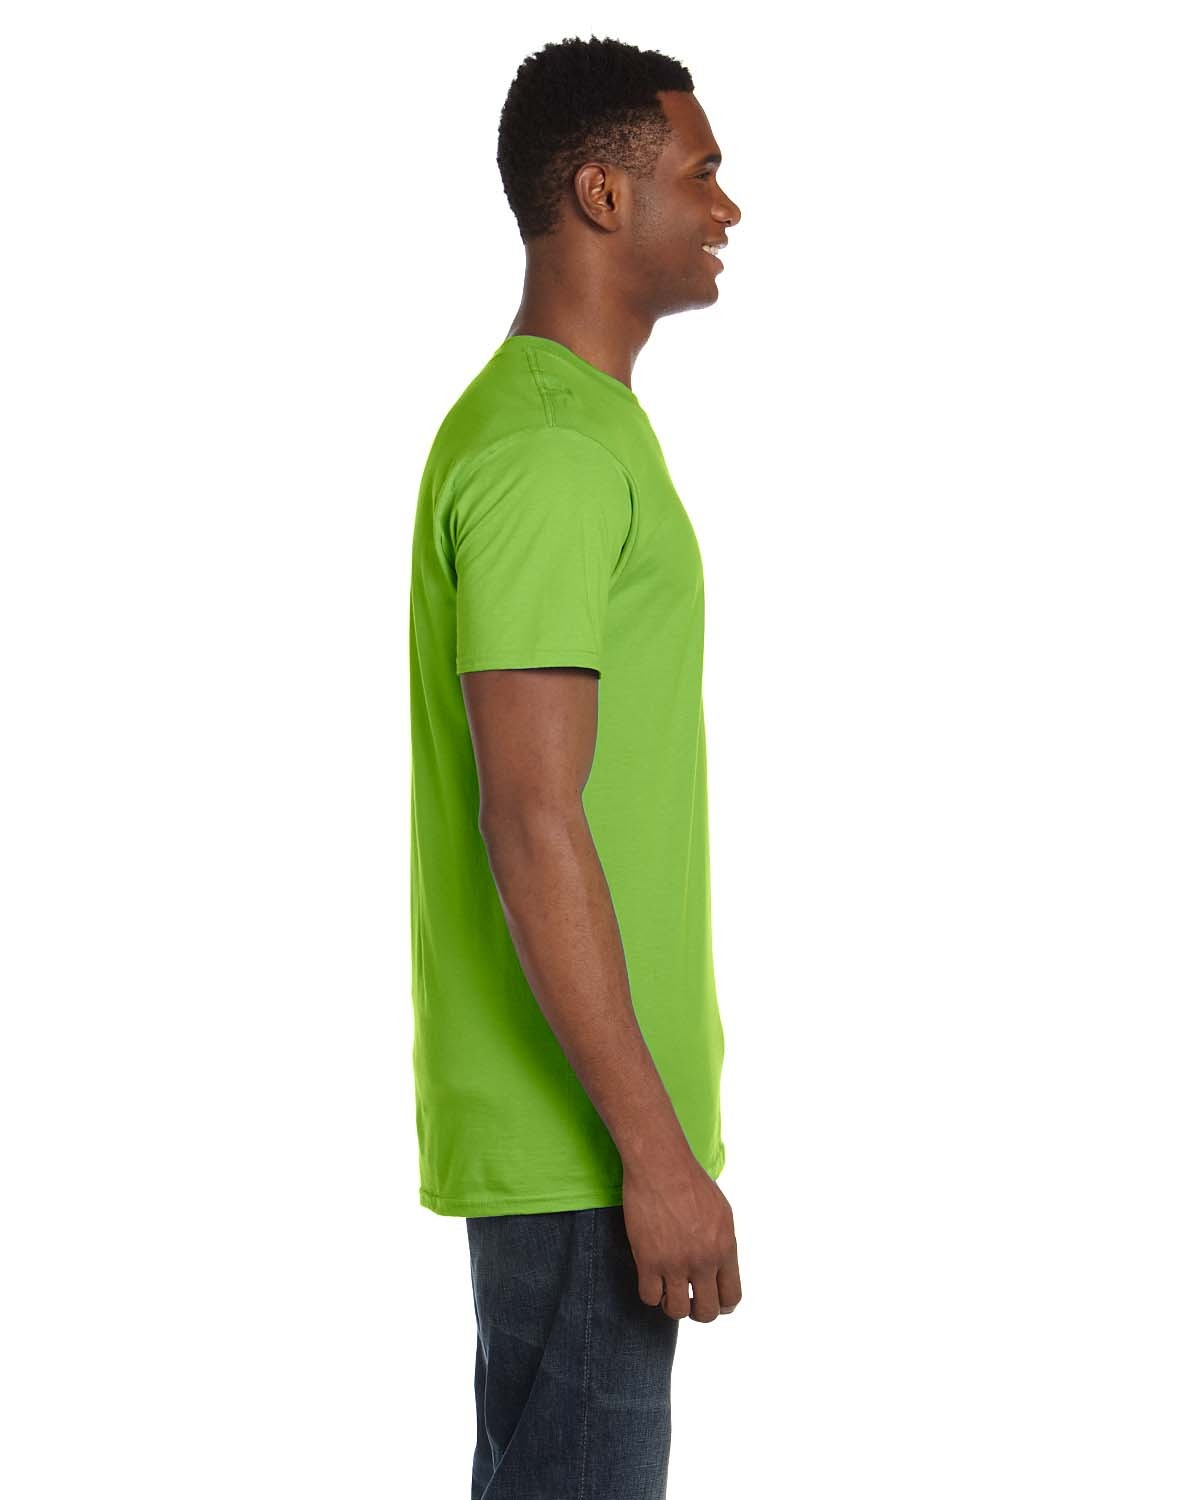 4980 Hanes LIME